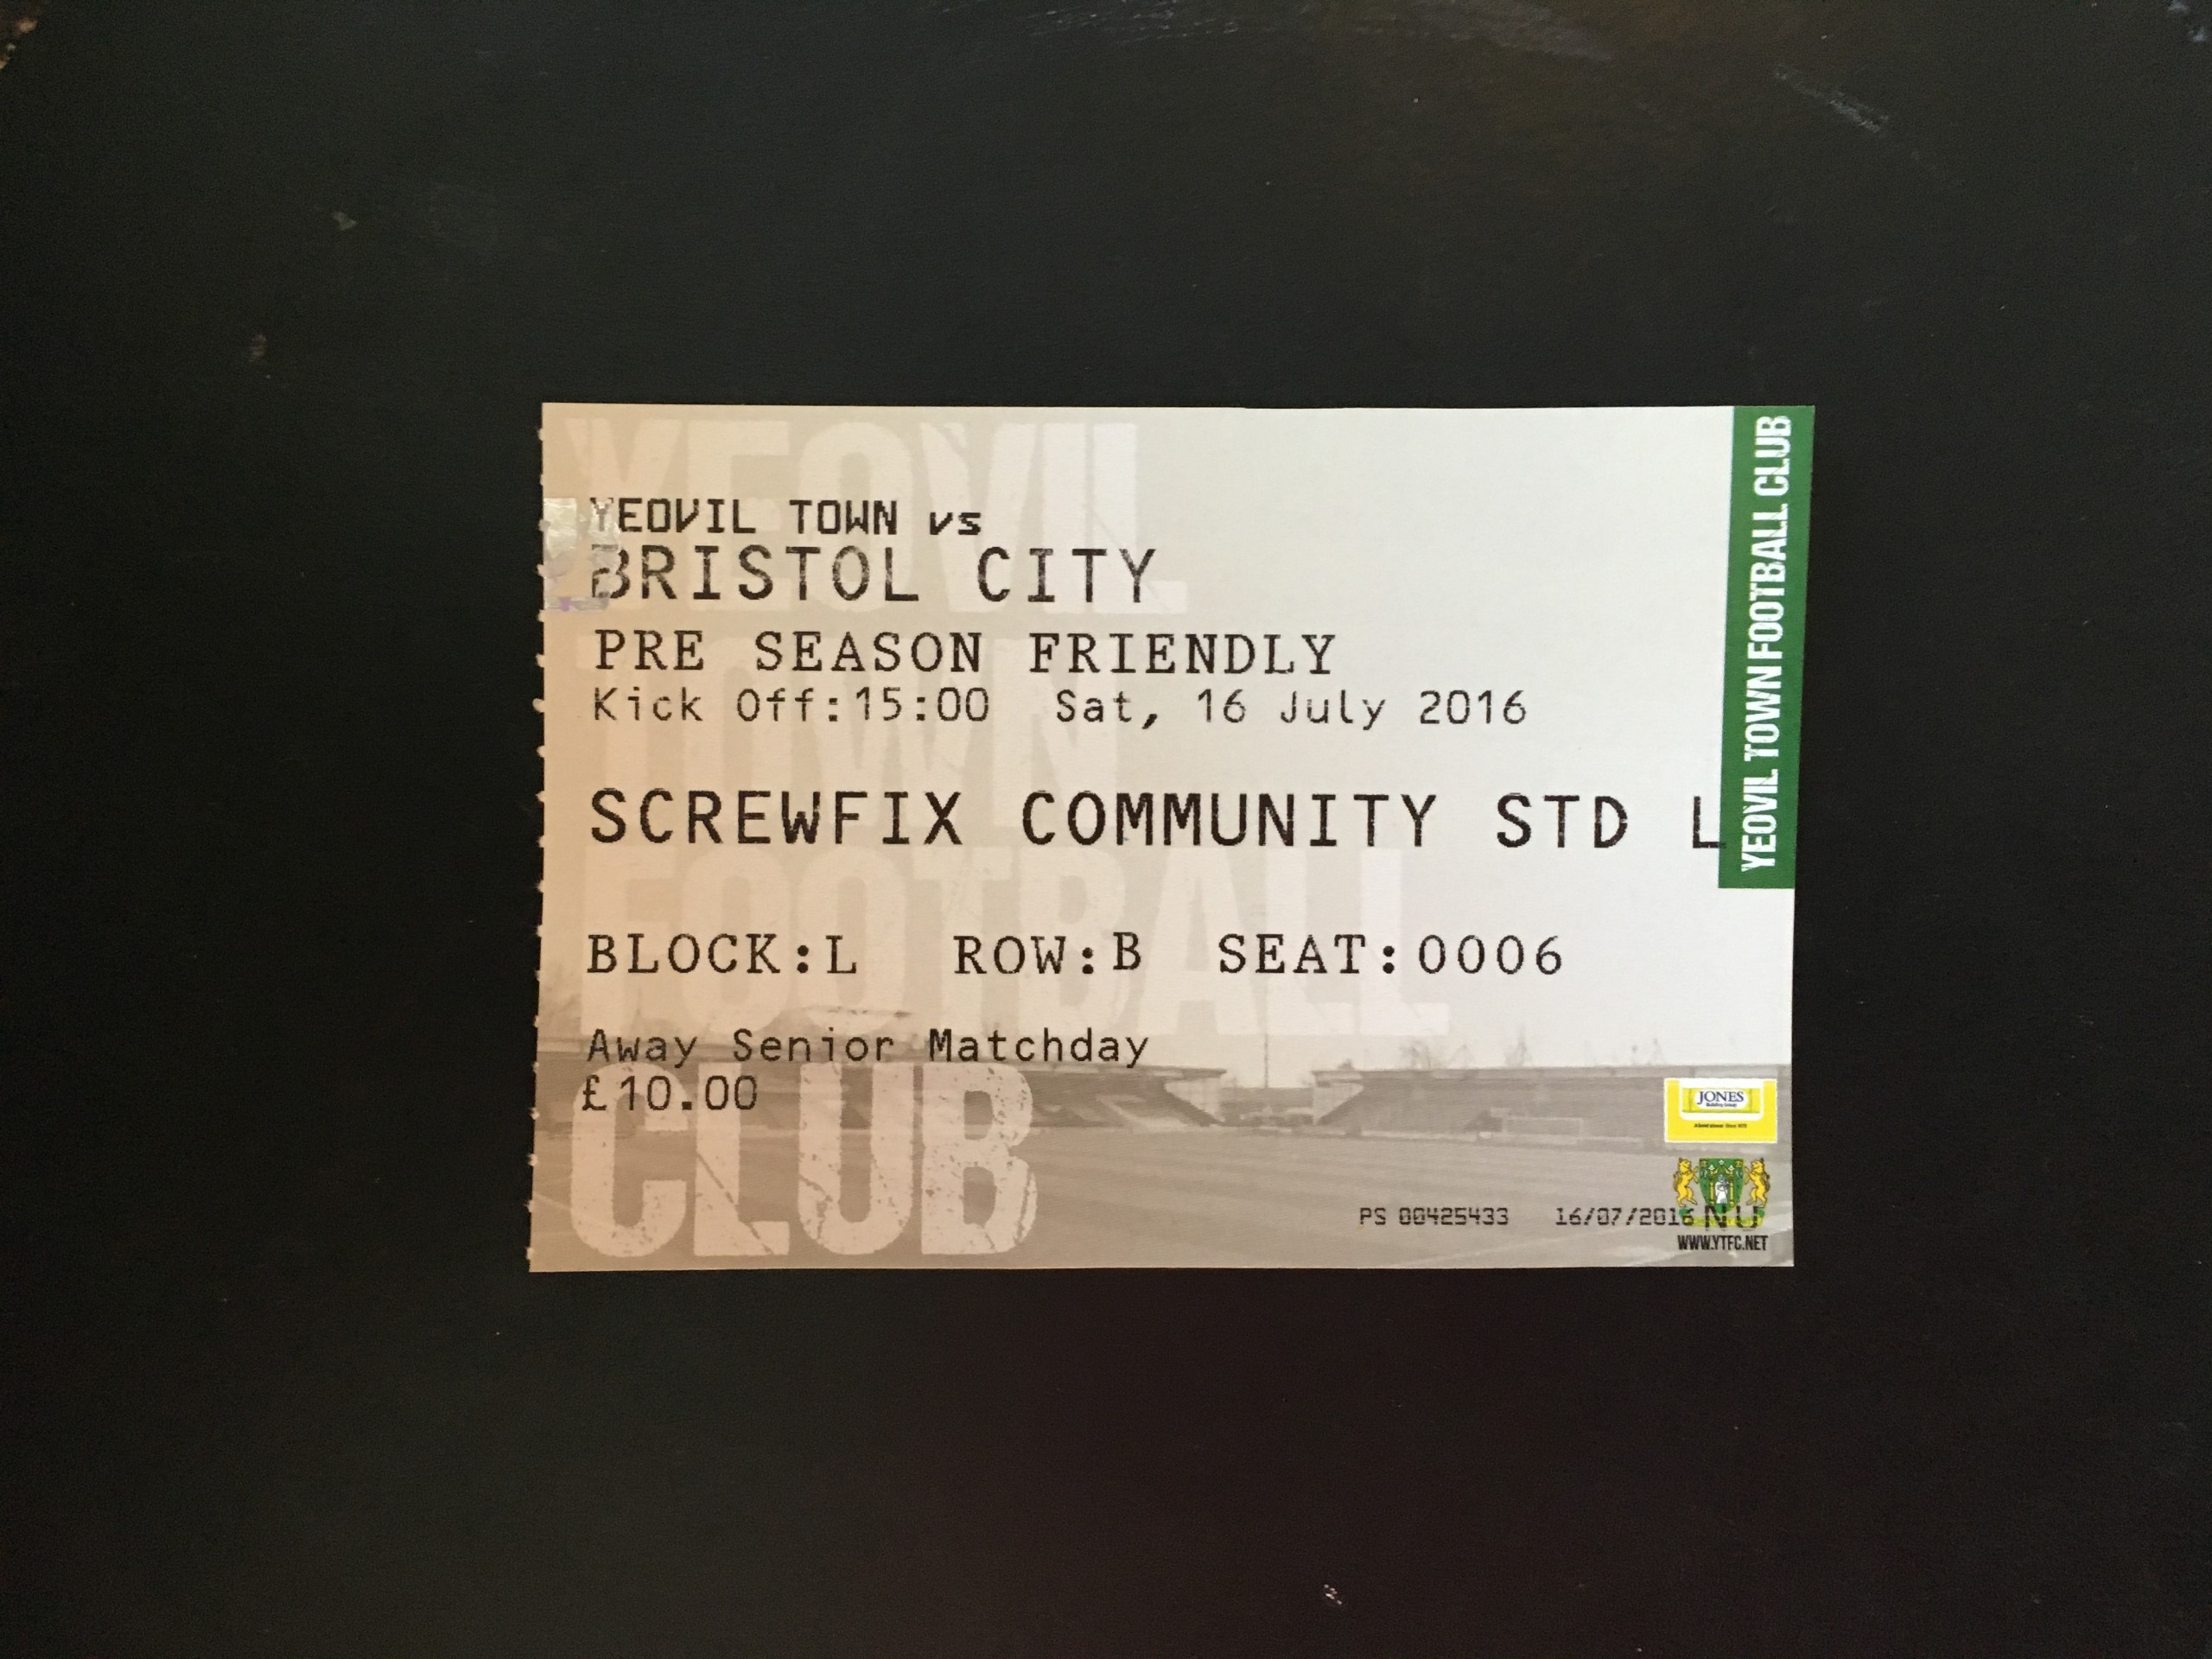 Yeovil Town v Bristol City 16-07-2016 Ticket